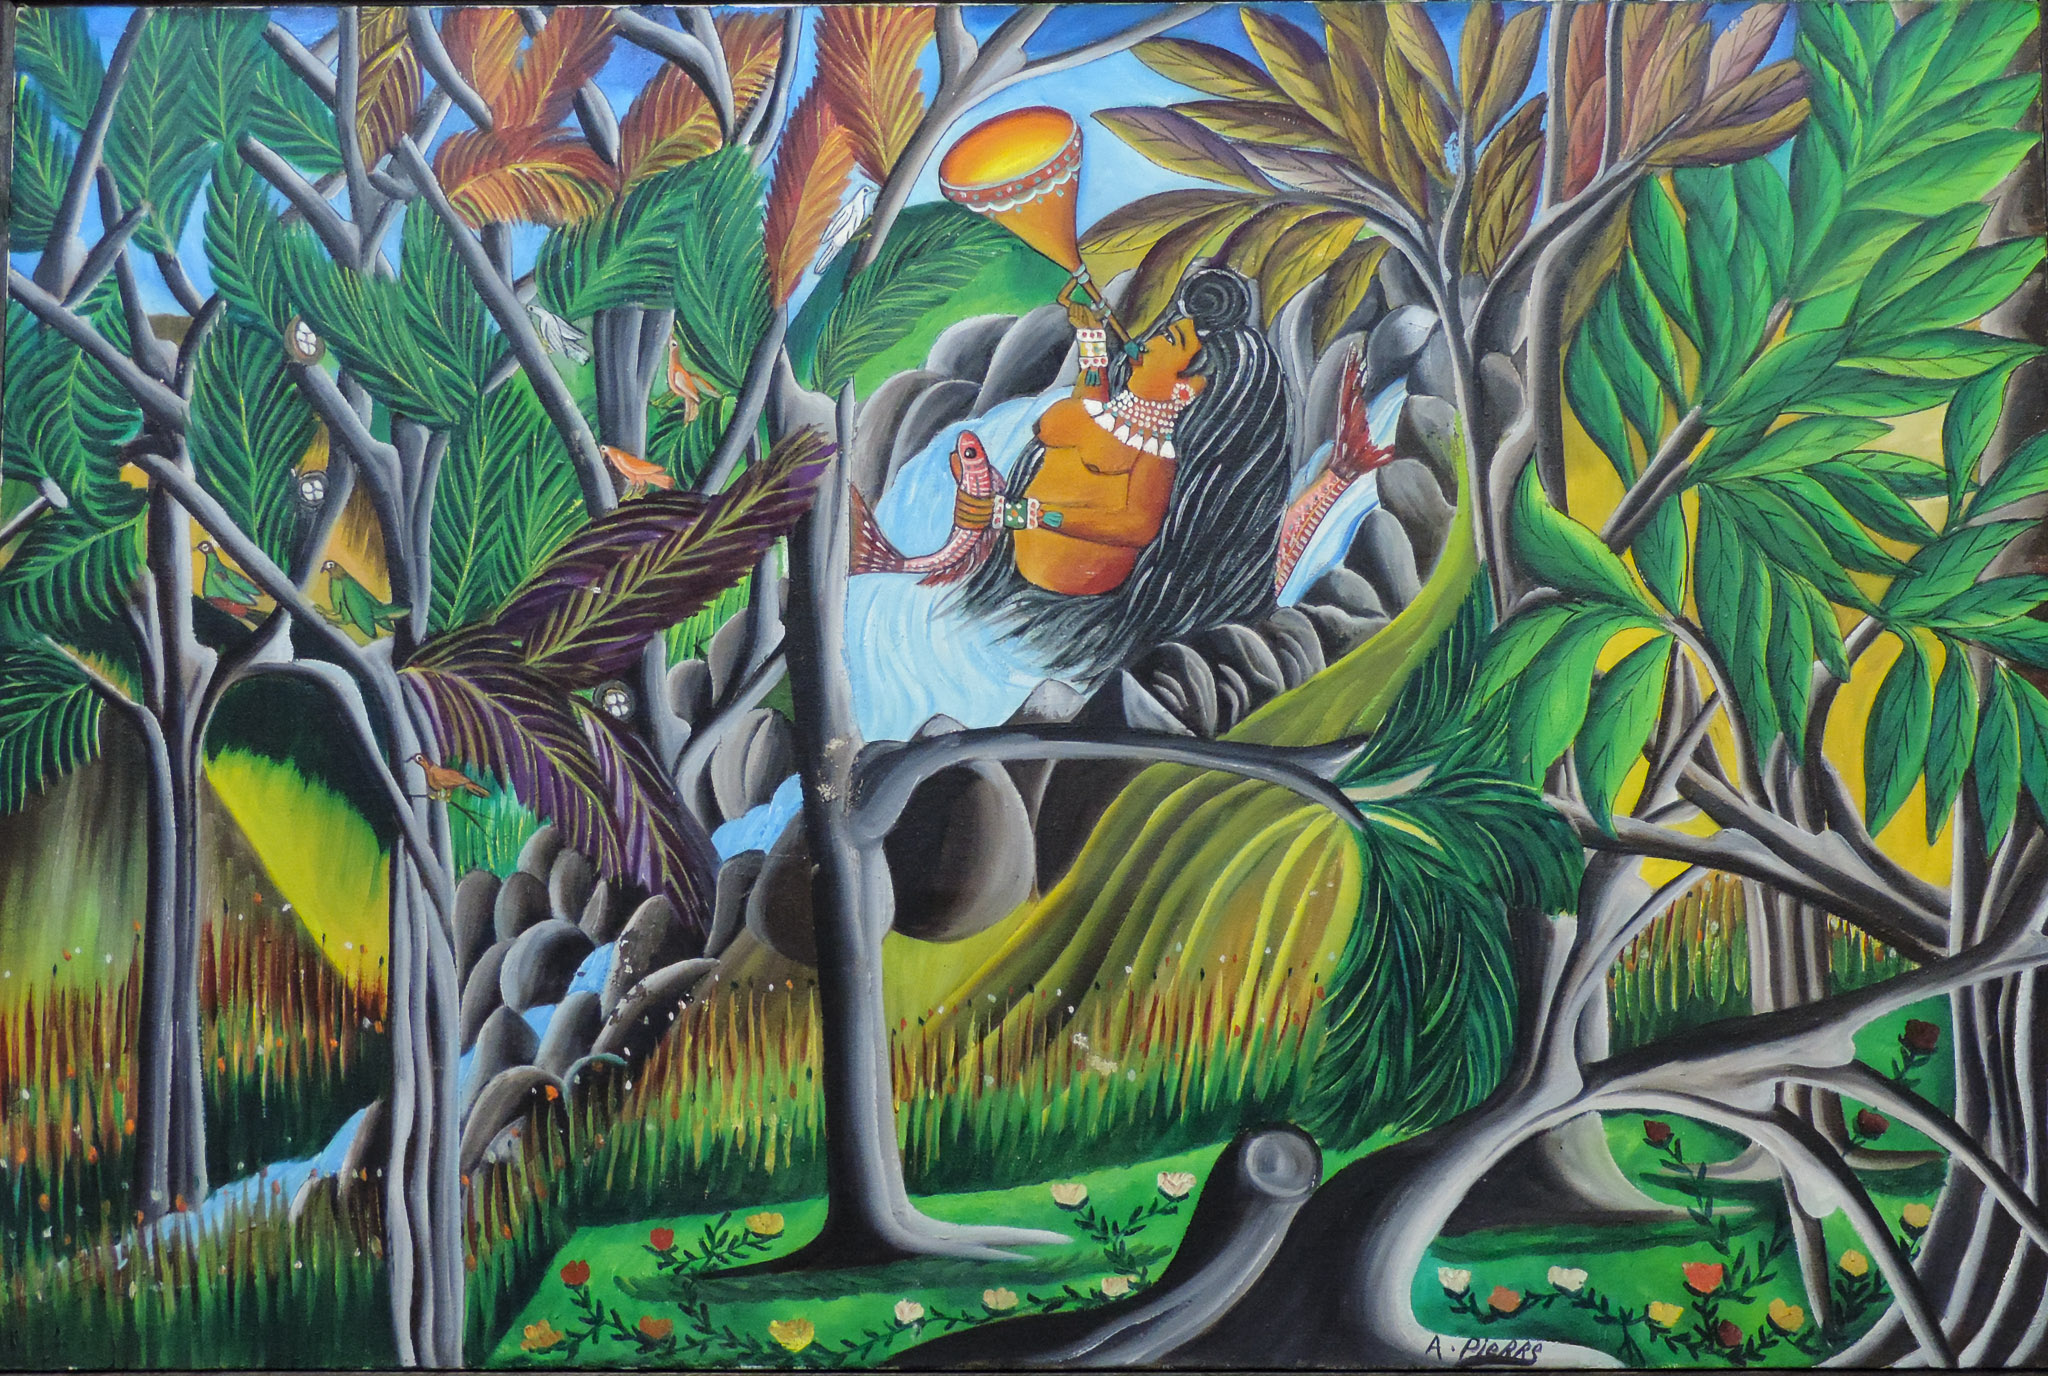 LaSirene in Jungle, 1960-70s